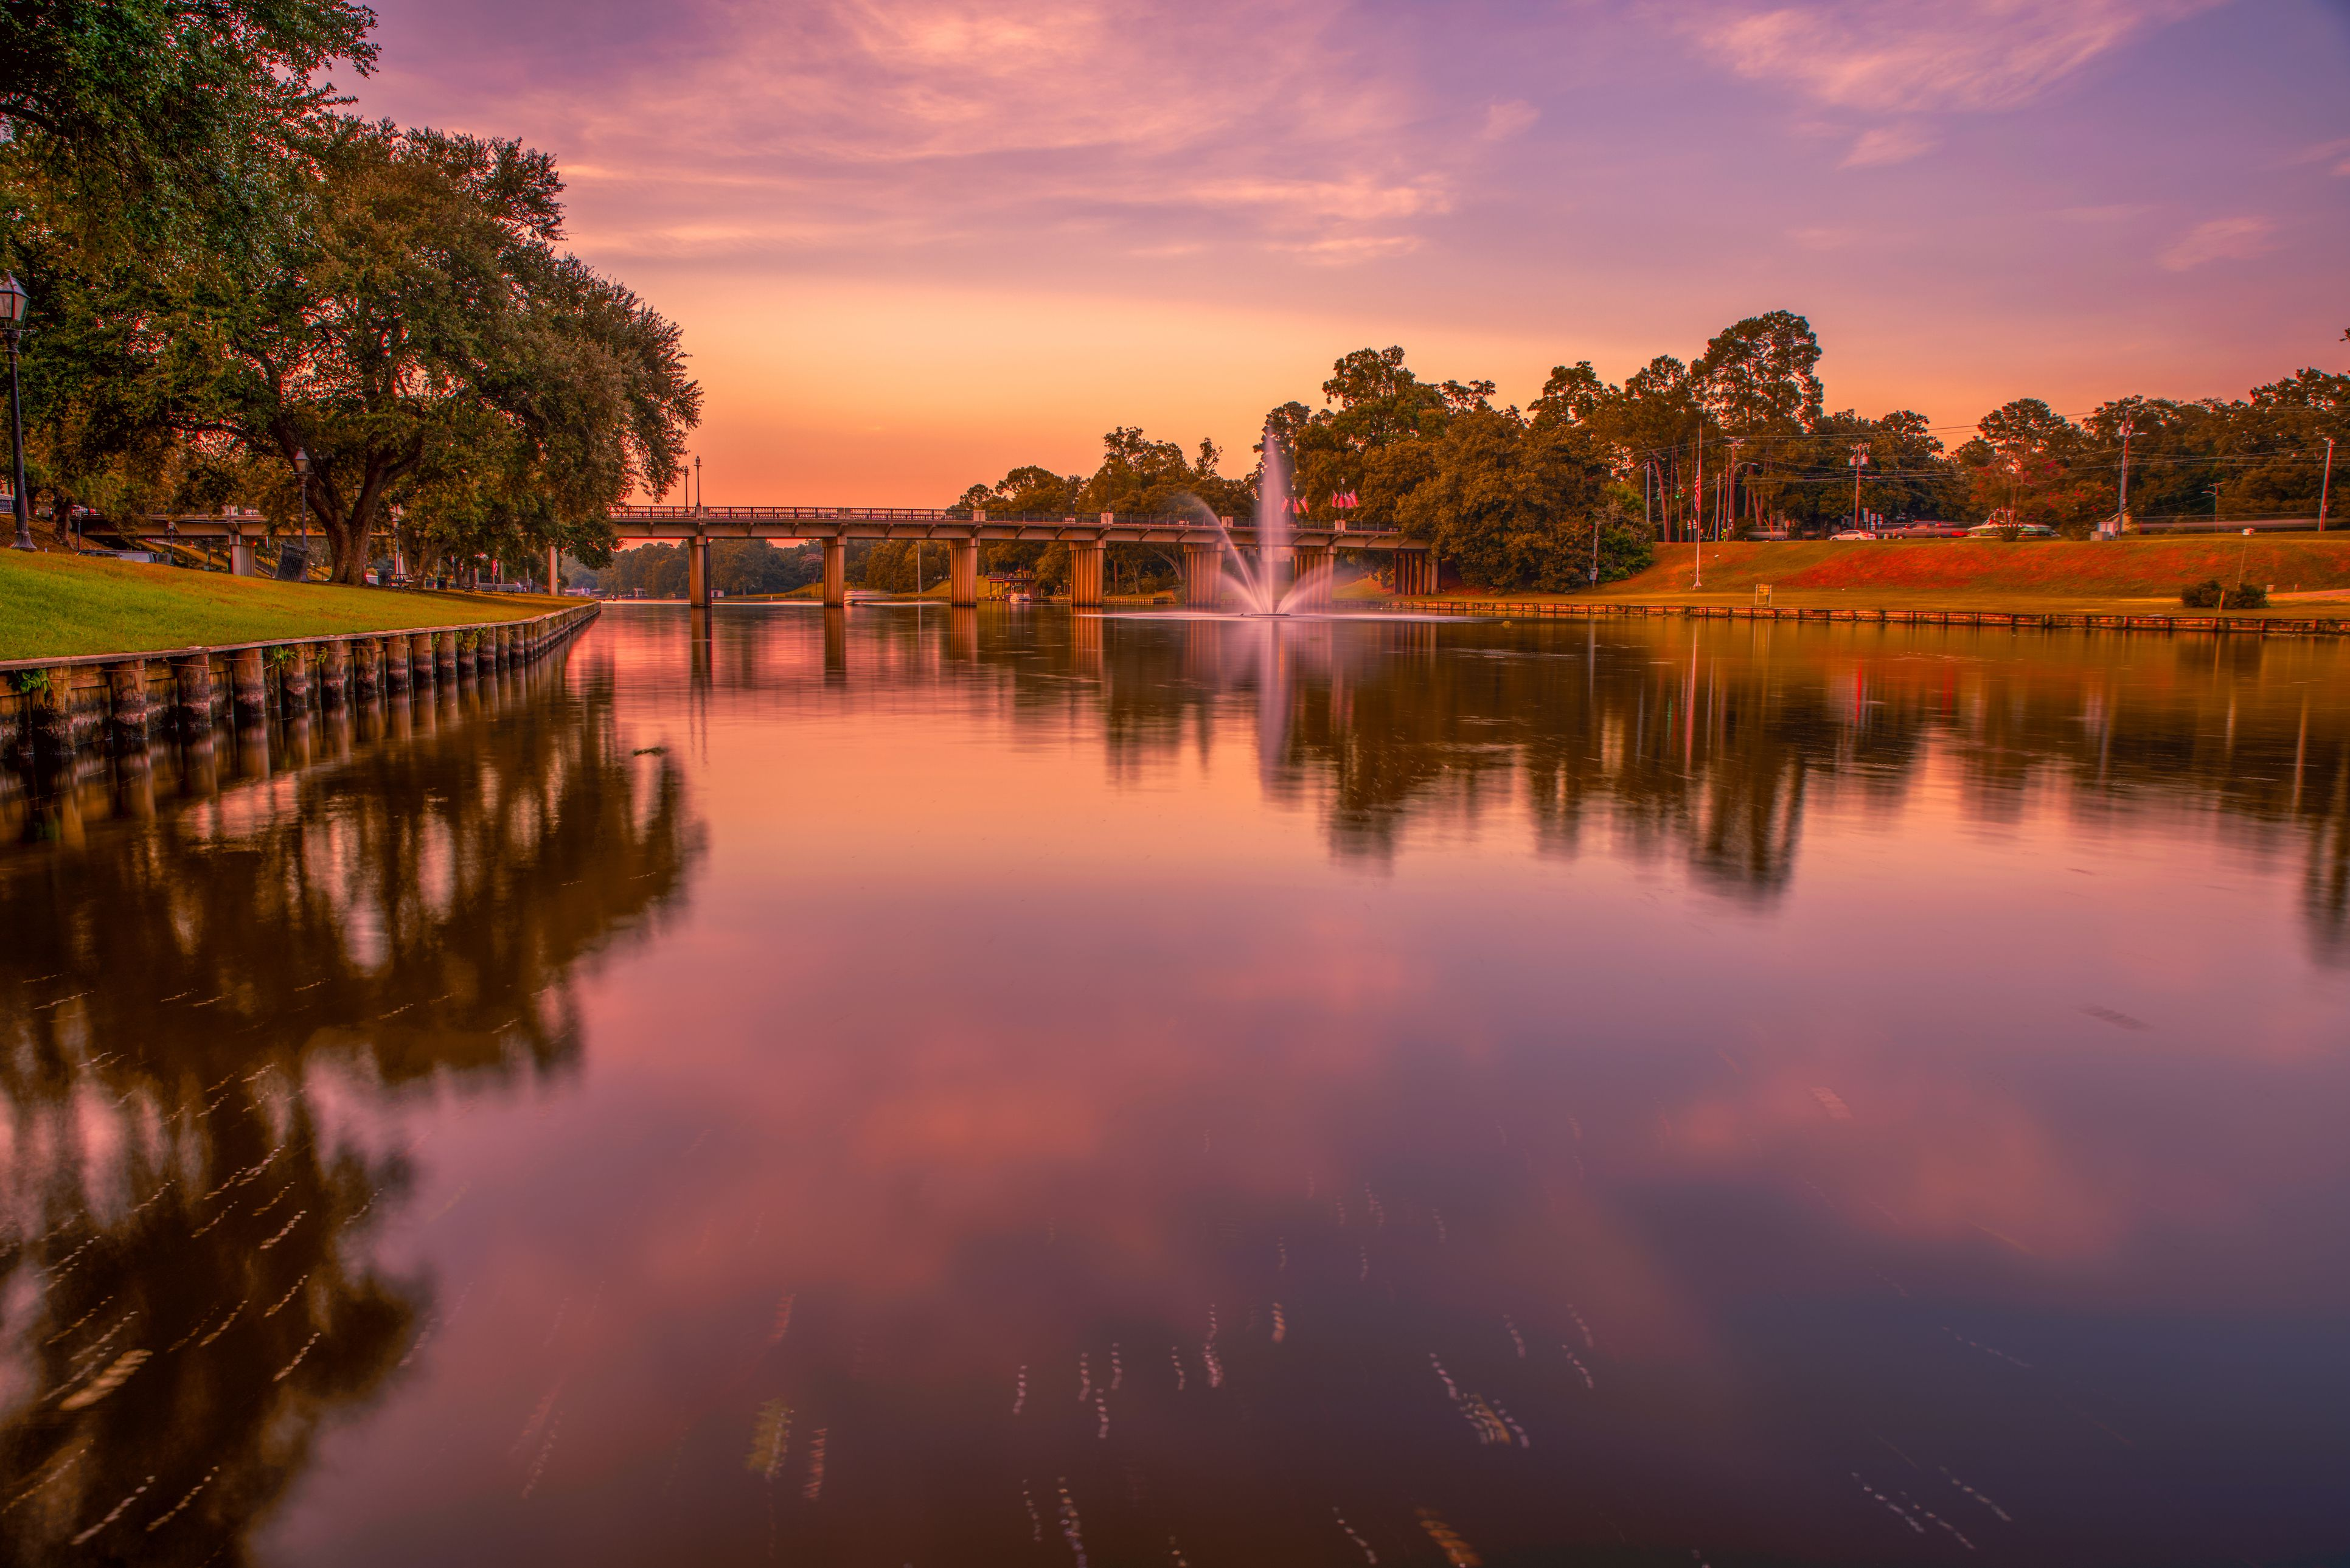 The Cane River at Natchitoches